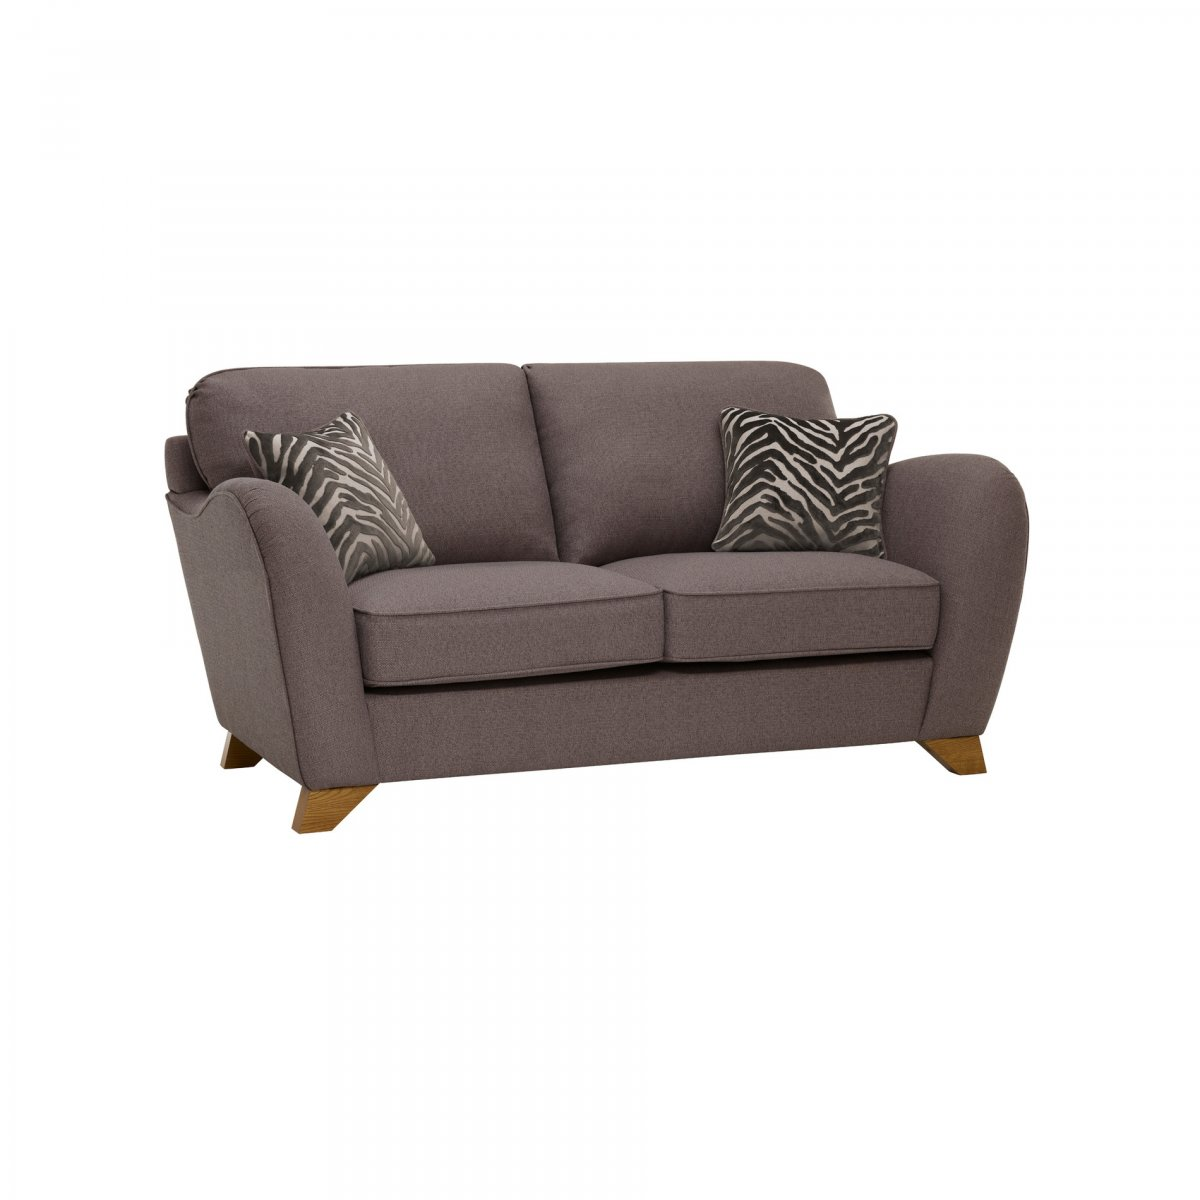 Compact Sofas For Small Rooms Edinburgh